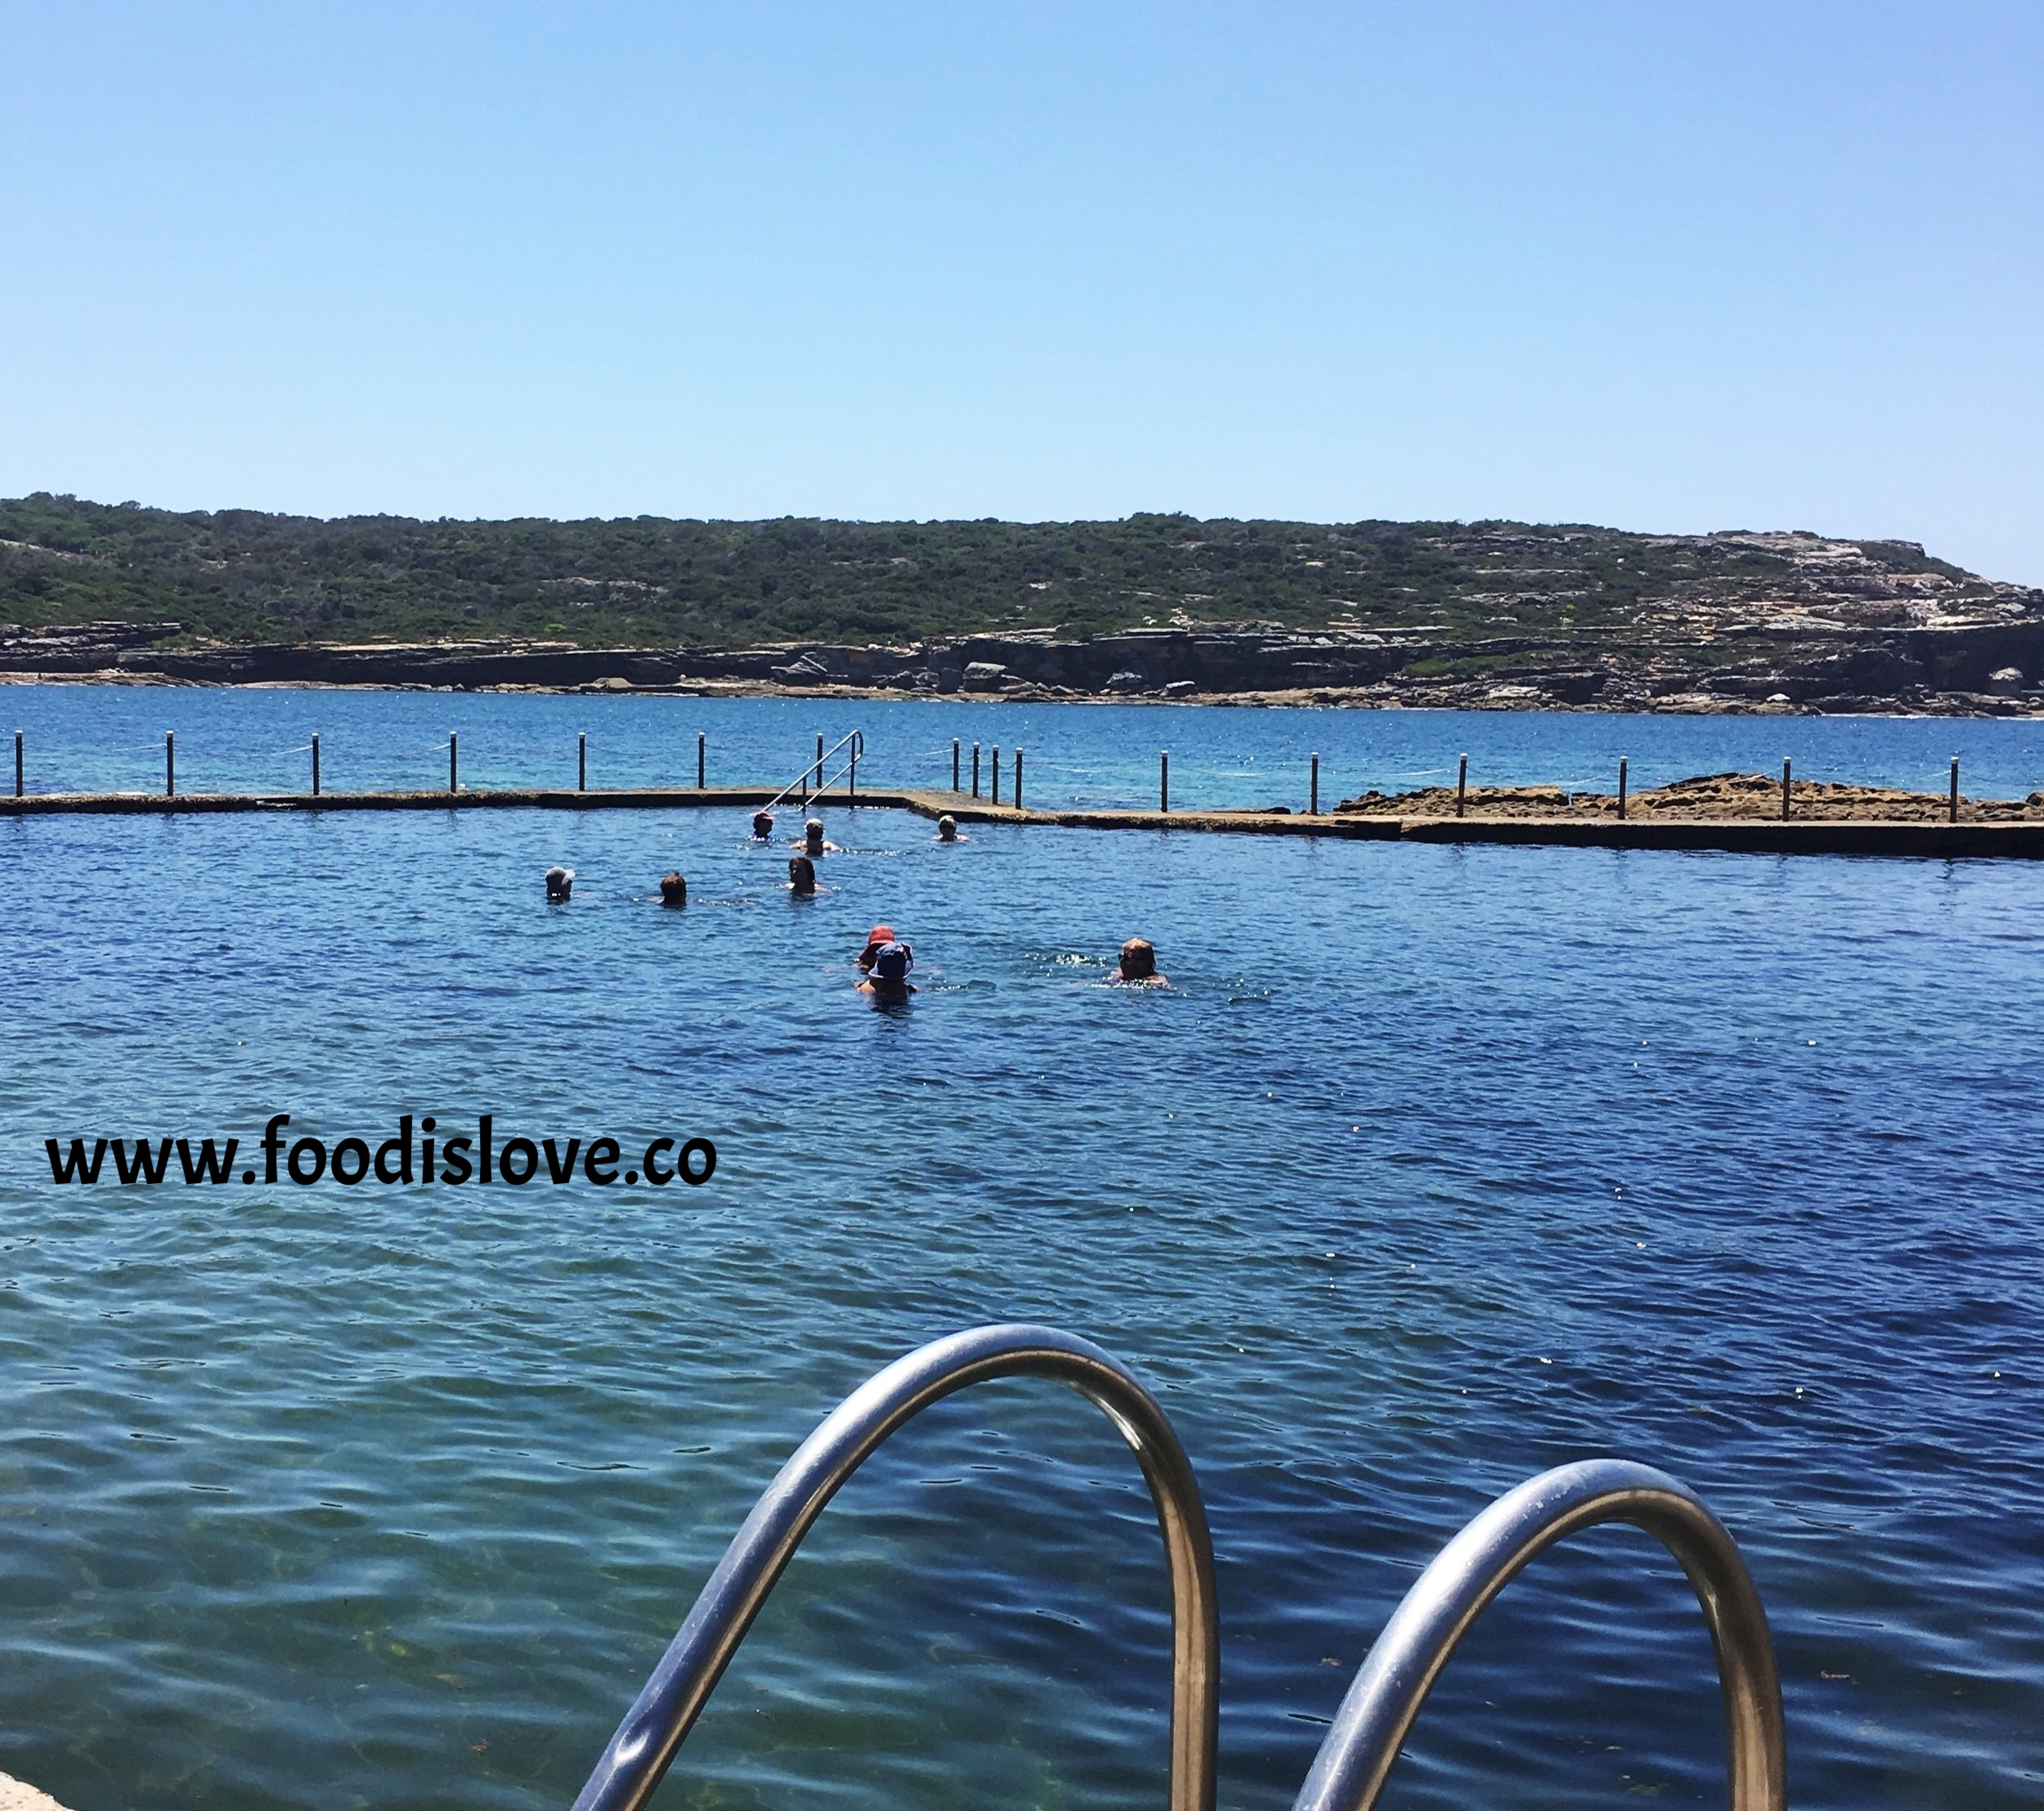 No time for swimming! Greek grandmothers discuss recipes at Malabar pool, Sydney,